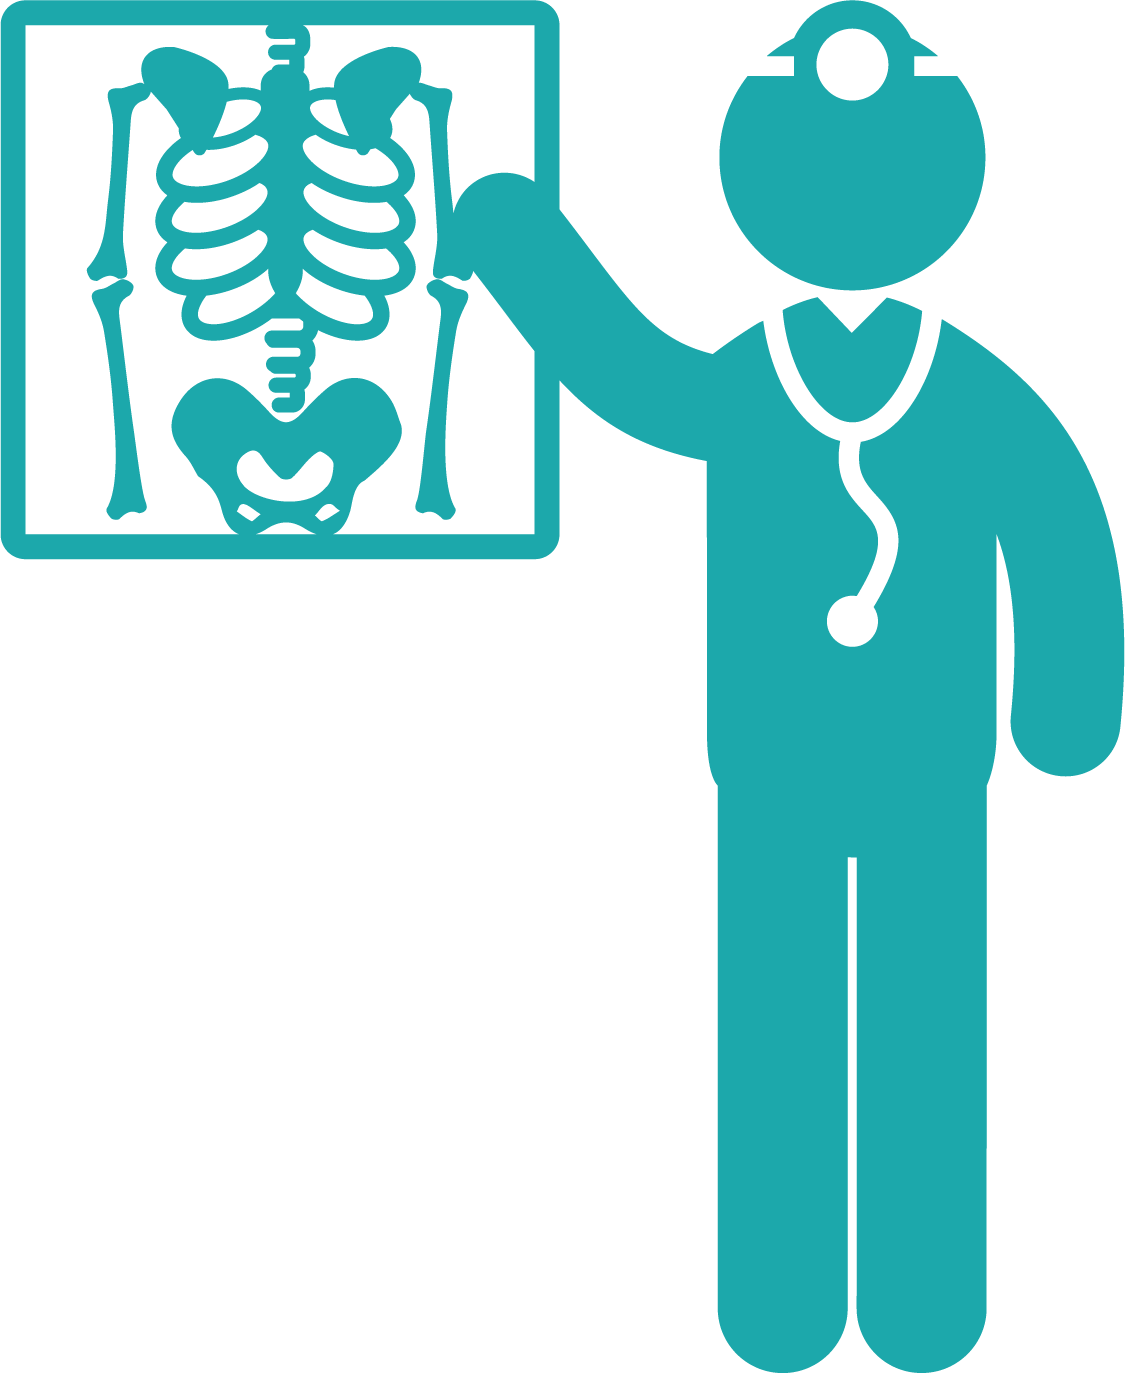 X Ray Computed Tomography Health Care Icon X Ray Vector Free Clipart Full Size Clipart 1002799 Pinclipart